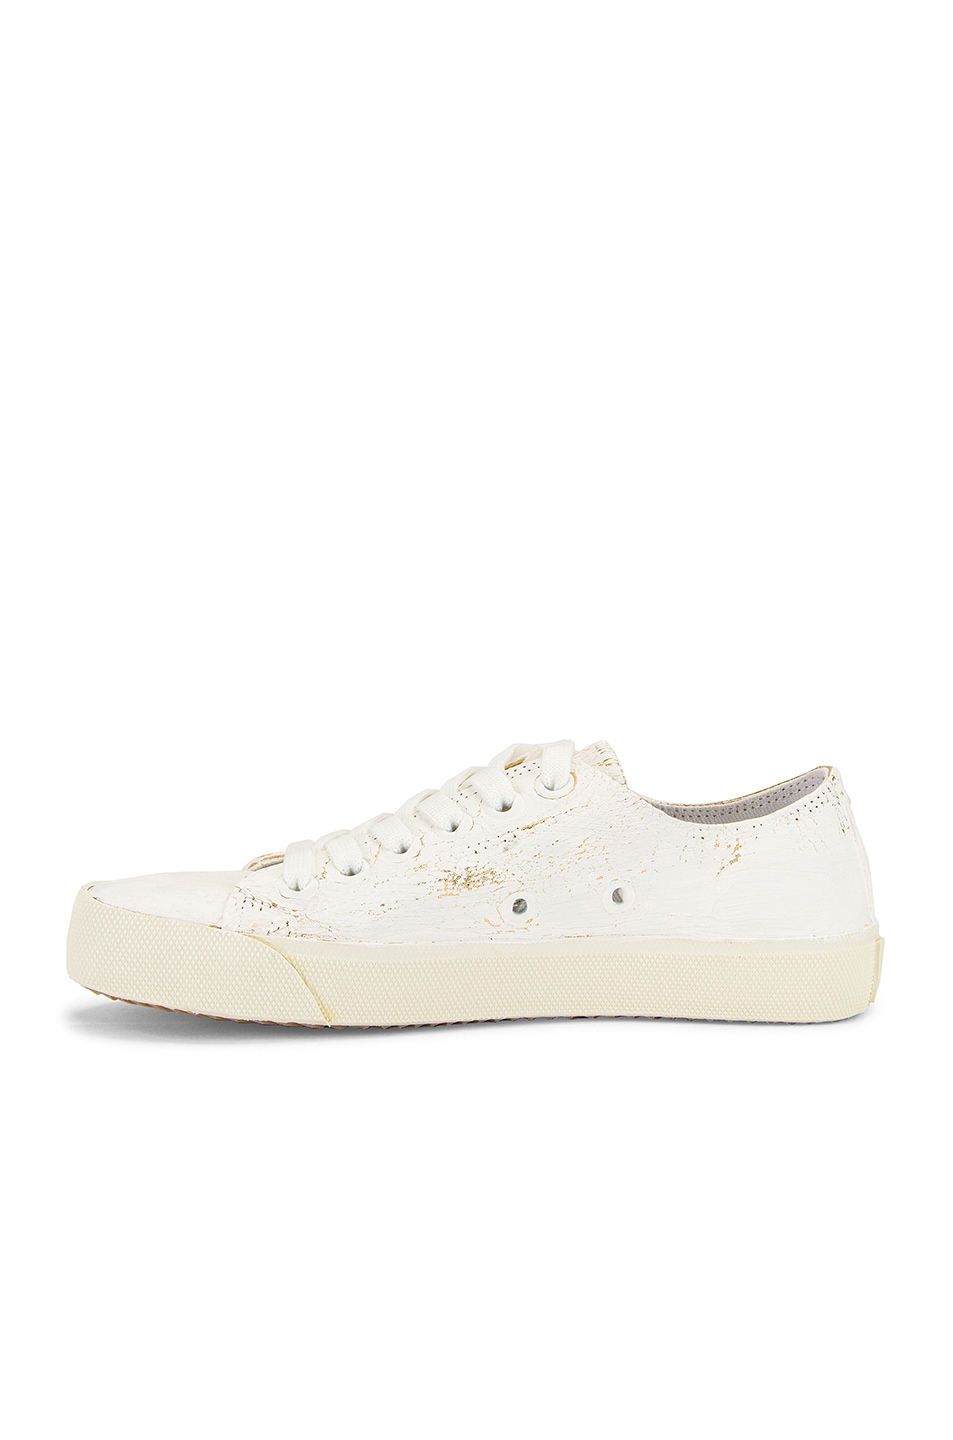 Image 5 of Maison Margiela Low Top Tabi Sneakers in White & Gold